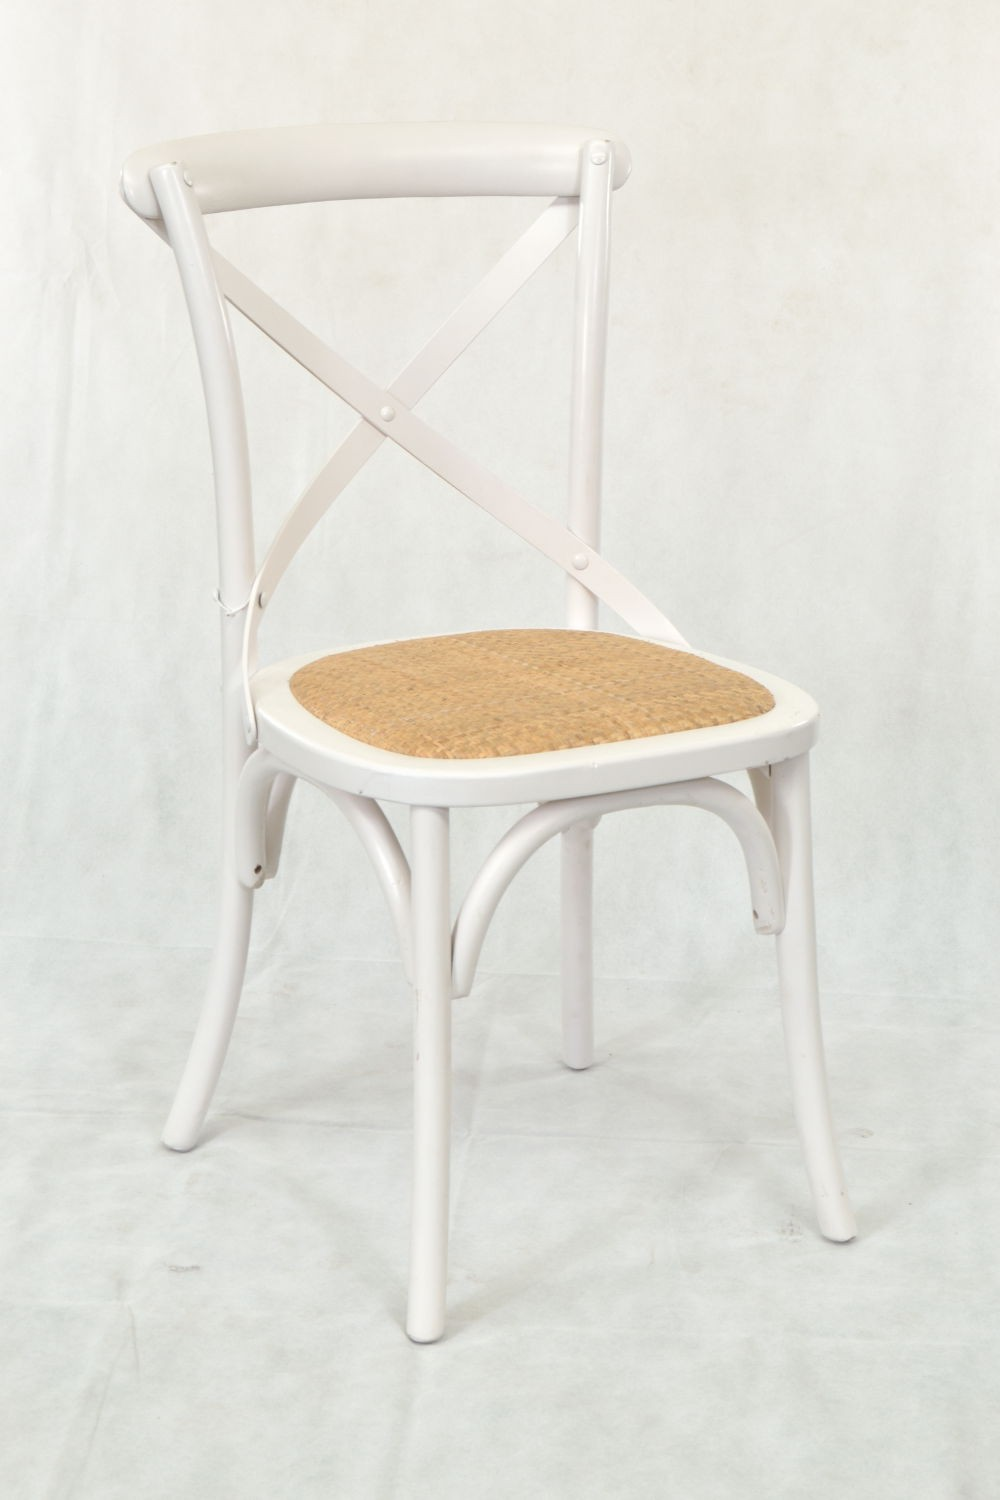 Small Chair For Bedroom Chairs For Bedrooms In All Sizes With Small Chairs Without Arms